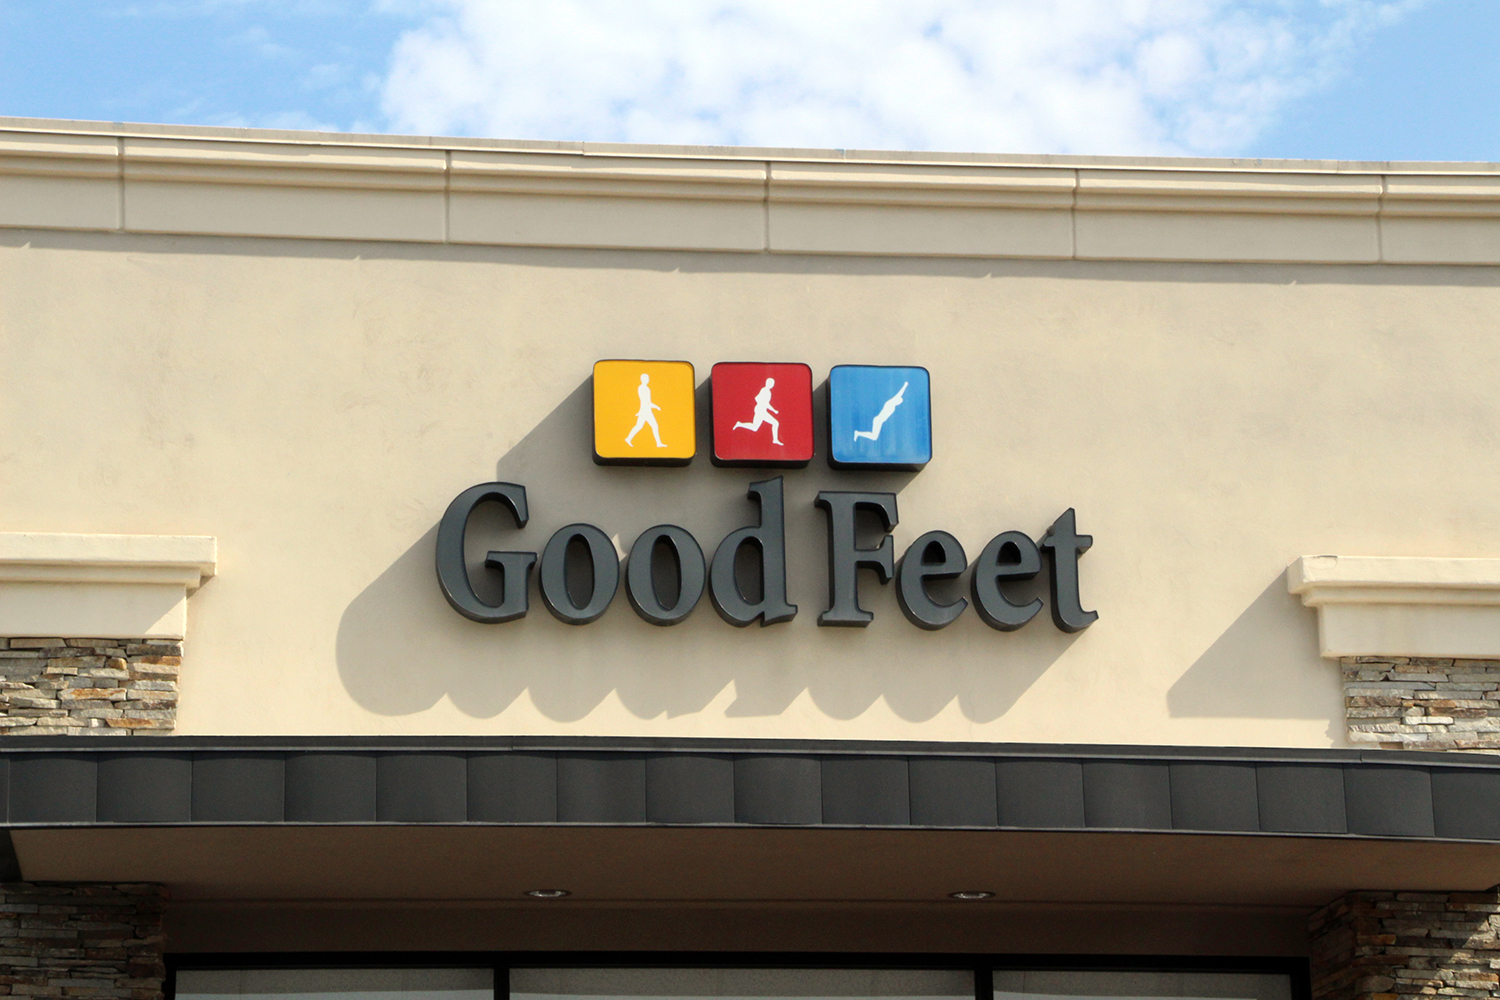 The Good Feet Store image 3